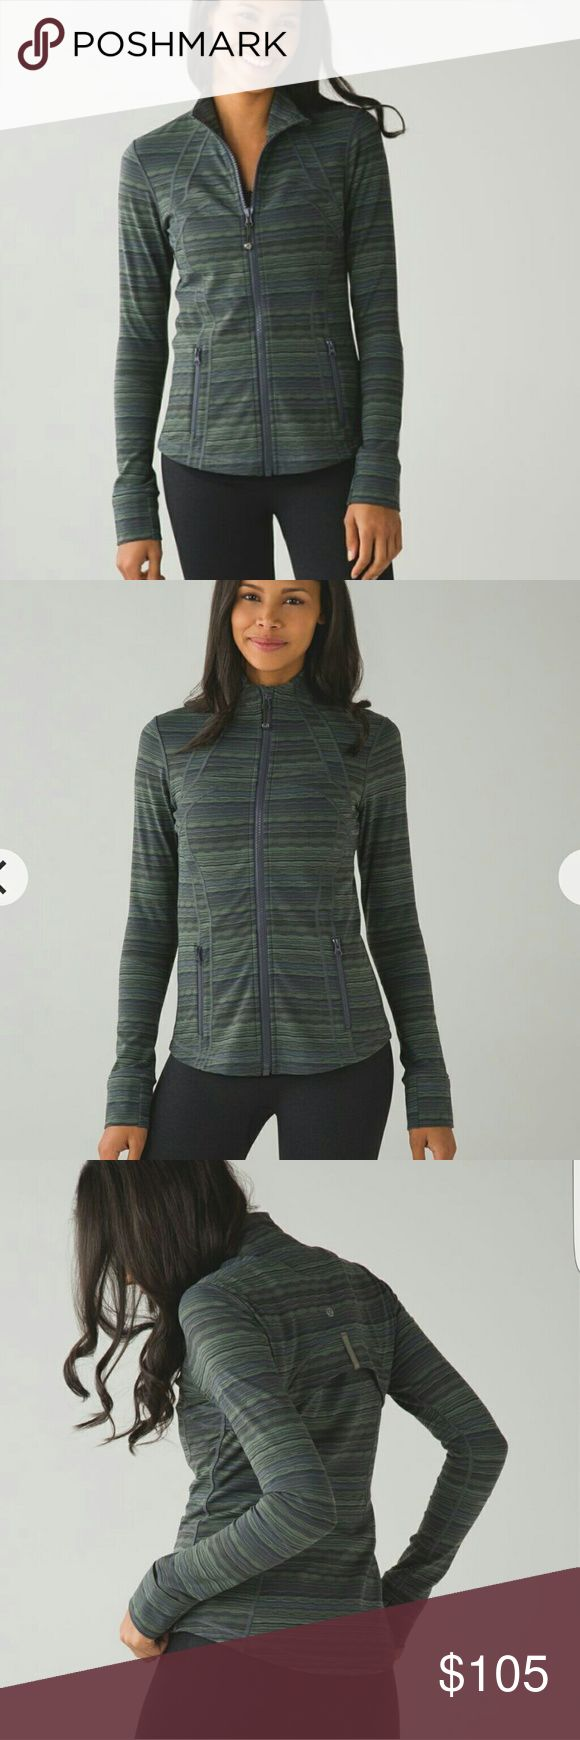 NWT Lululemon Fatigue Green Stripe Define Jacket 4 Condition:Brand new with tags Color code:Sdsf,fatg,slte Color:Fatigue,olive,sage,army, military,slate,grey,gray,silver Pattern: Wavy striped,Space Dye,Cyber Stripes Closure:Full zip up Material:Luon Style:Fitted Offers:Price on here is firm,less with ???? Trades: Open to other lulu of equal value Notes:Similar to forme lululemon athletica Jackets & Coats